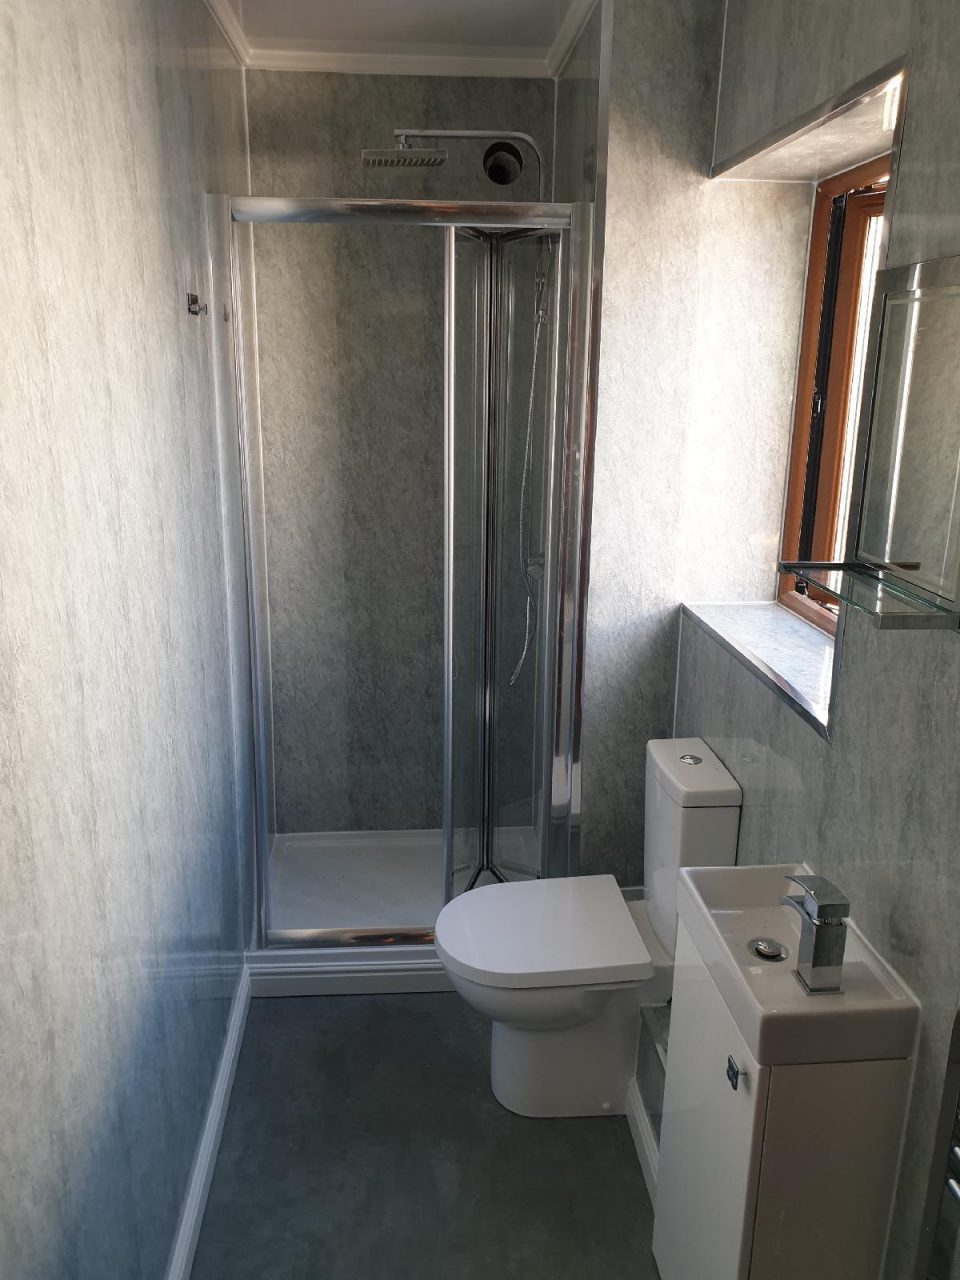 New Bathroom Mrs Wootton in Birmingham Guest Cloakroom